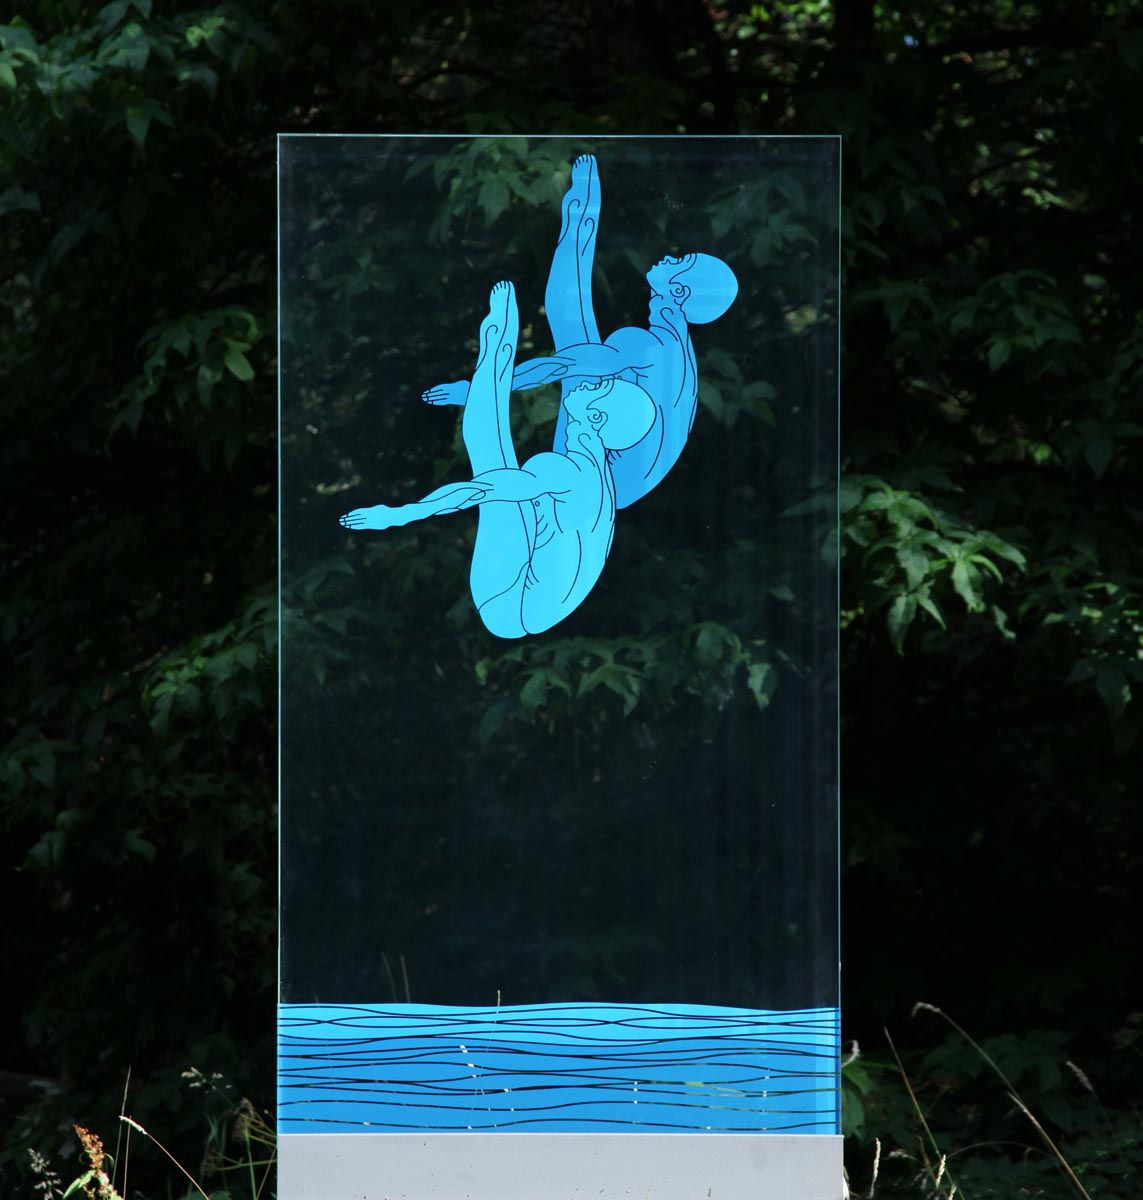 Divers by Esbe is a clear toughened glass panel with blue figures depicting two divers transferred onto the surface, one of many glass sculptures for sale at The Sculpture Park